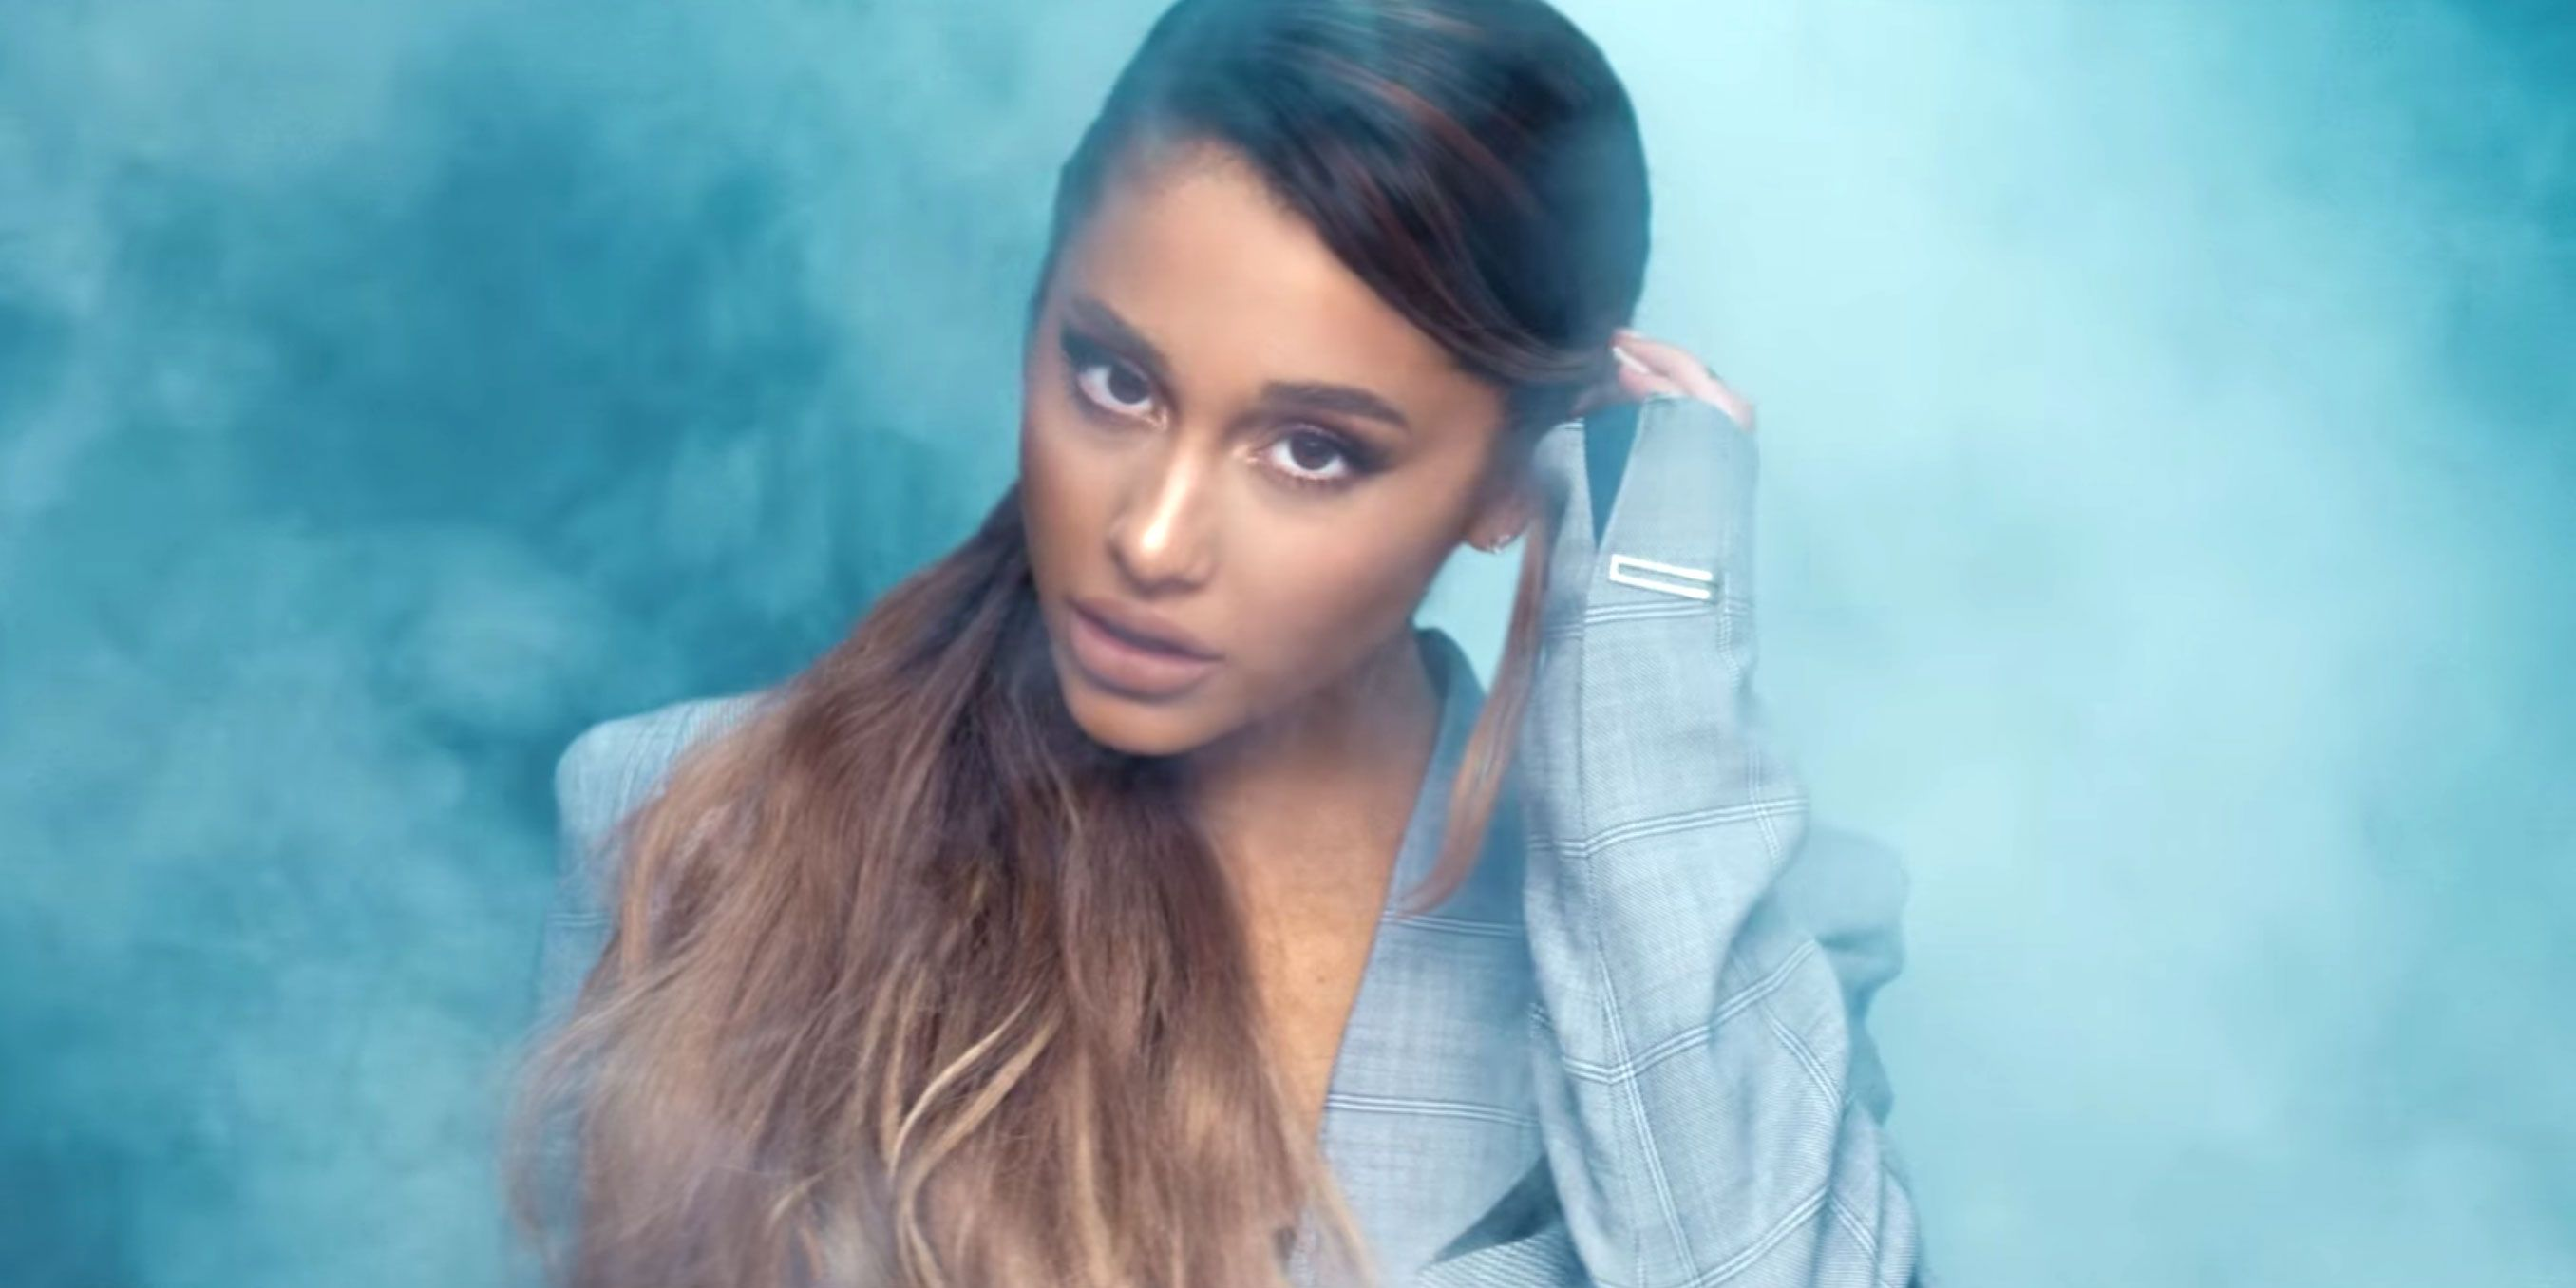 Ariana Grande breathin - 2019 Official Video naked (17 photo), Cleavage Celebrity picture